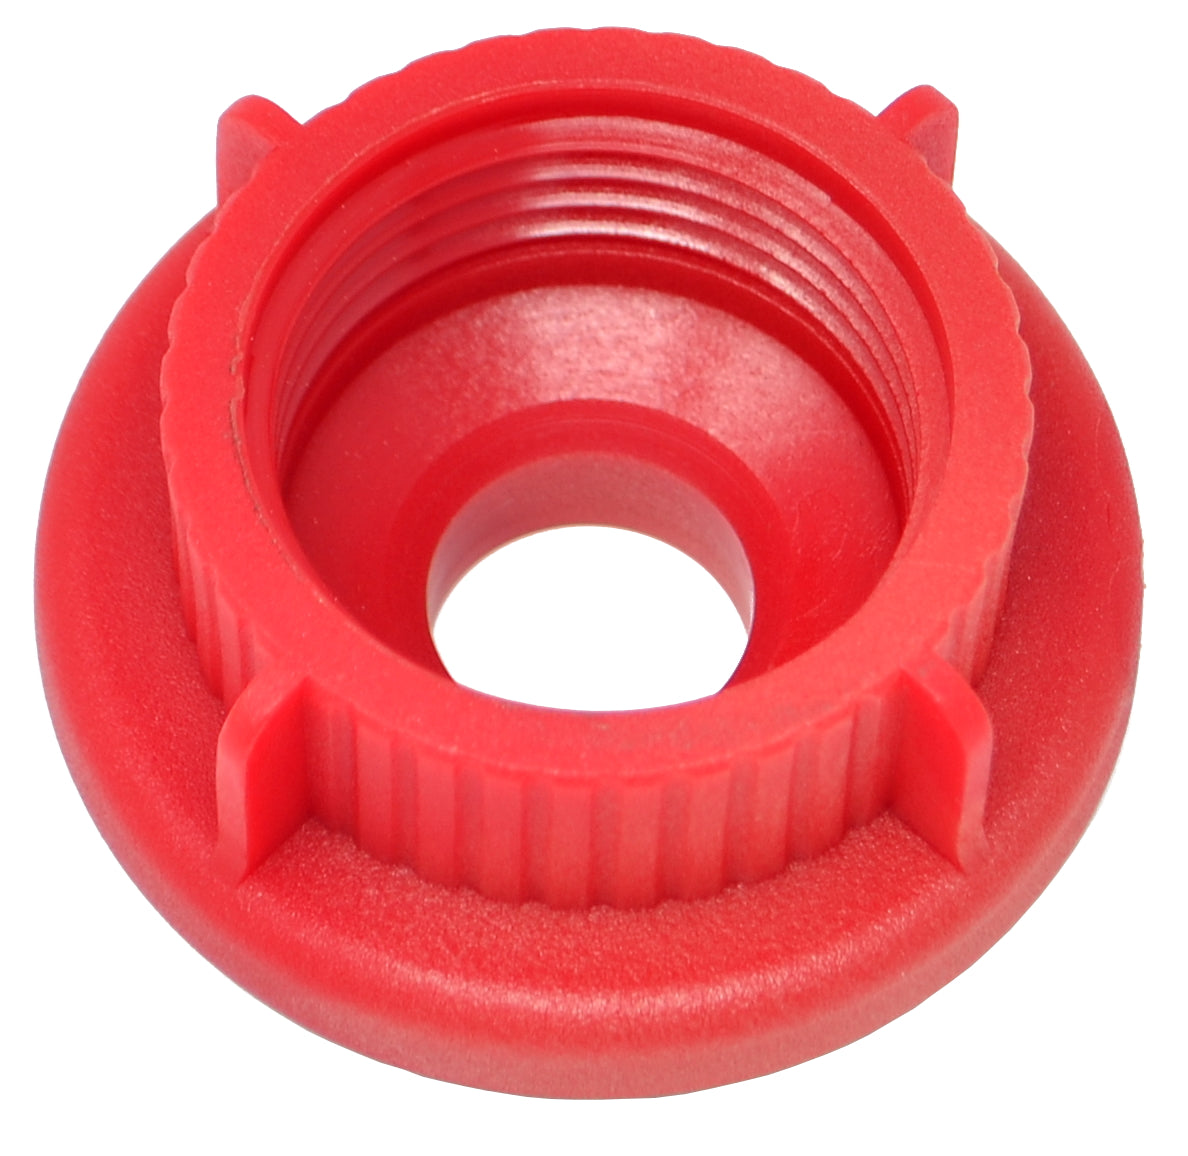 MX2301A1 Advanced Engine Oil Funnel Adapter Only - Toyota & Lexus Half Turn Top Down View